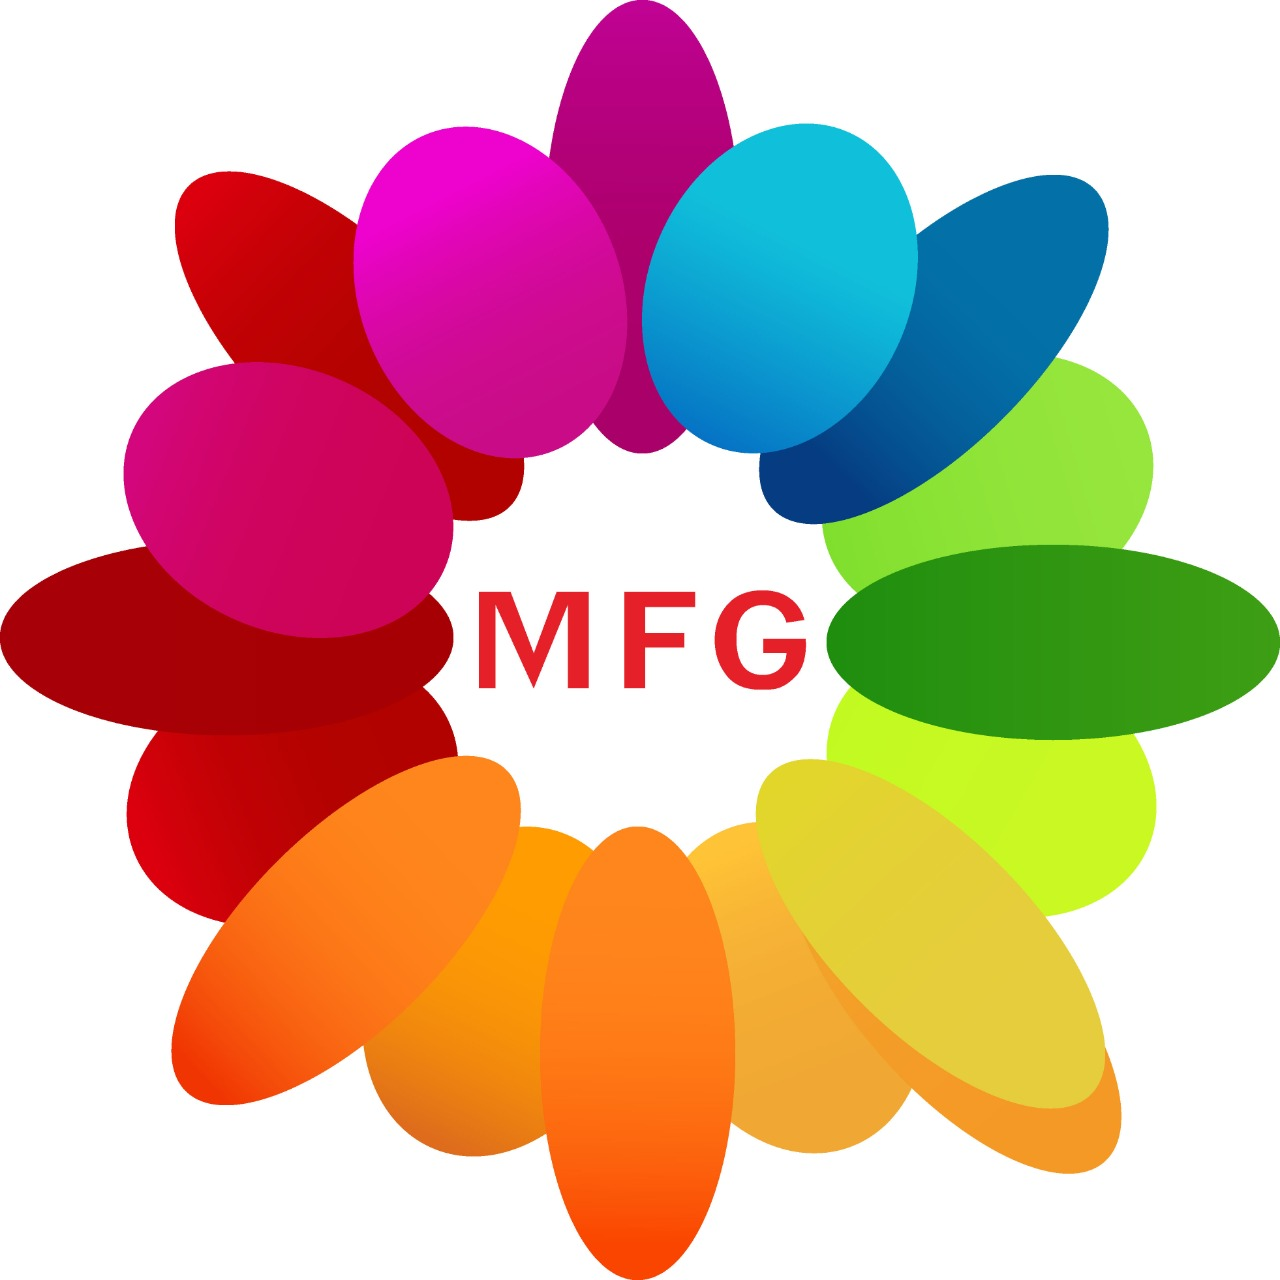 Bunch of white Asiatic lilies with 1 kg rasgullas